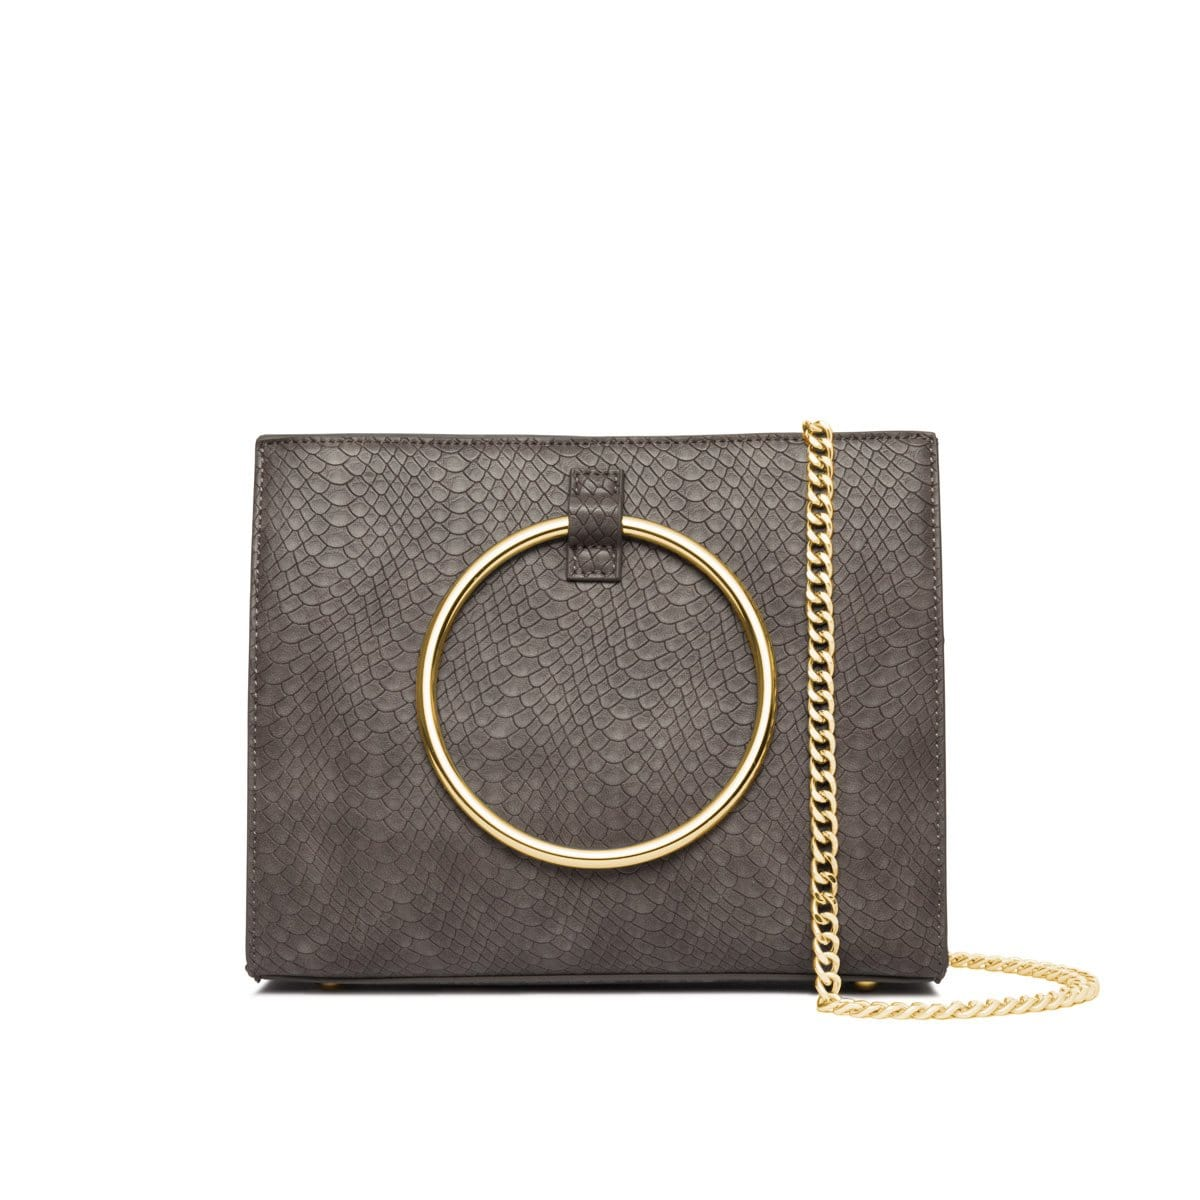 Frost Grey Moda Handbag Yellow Gold